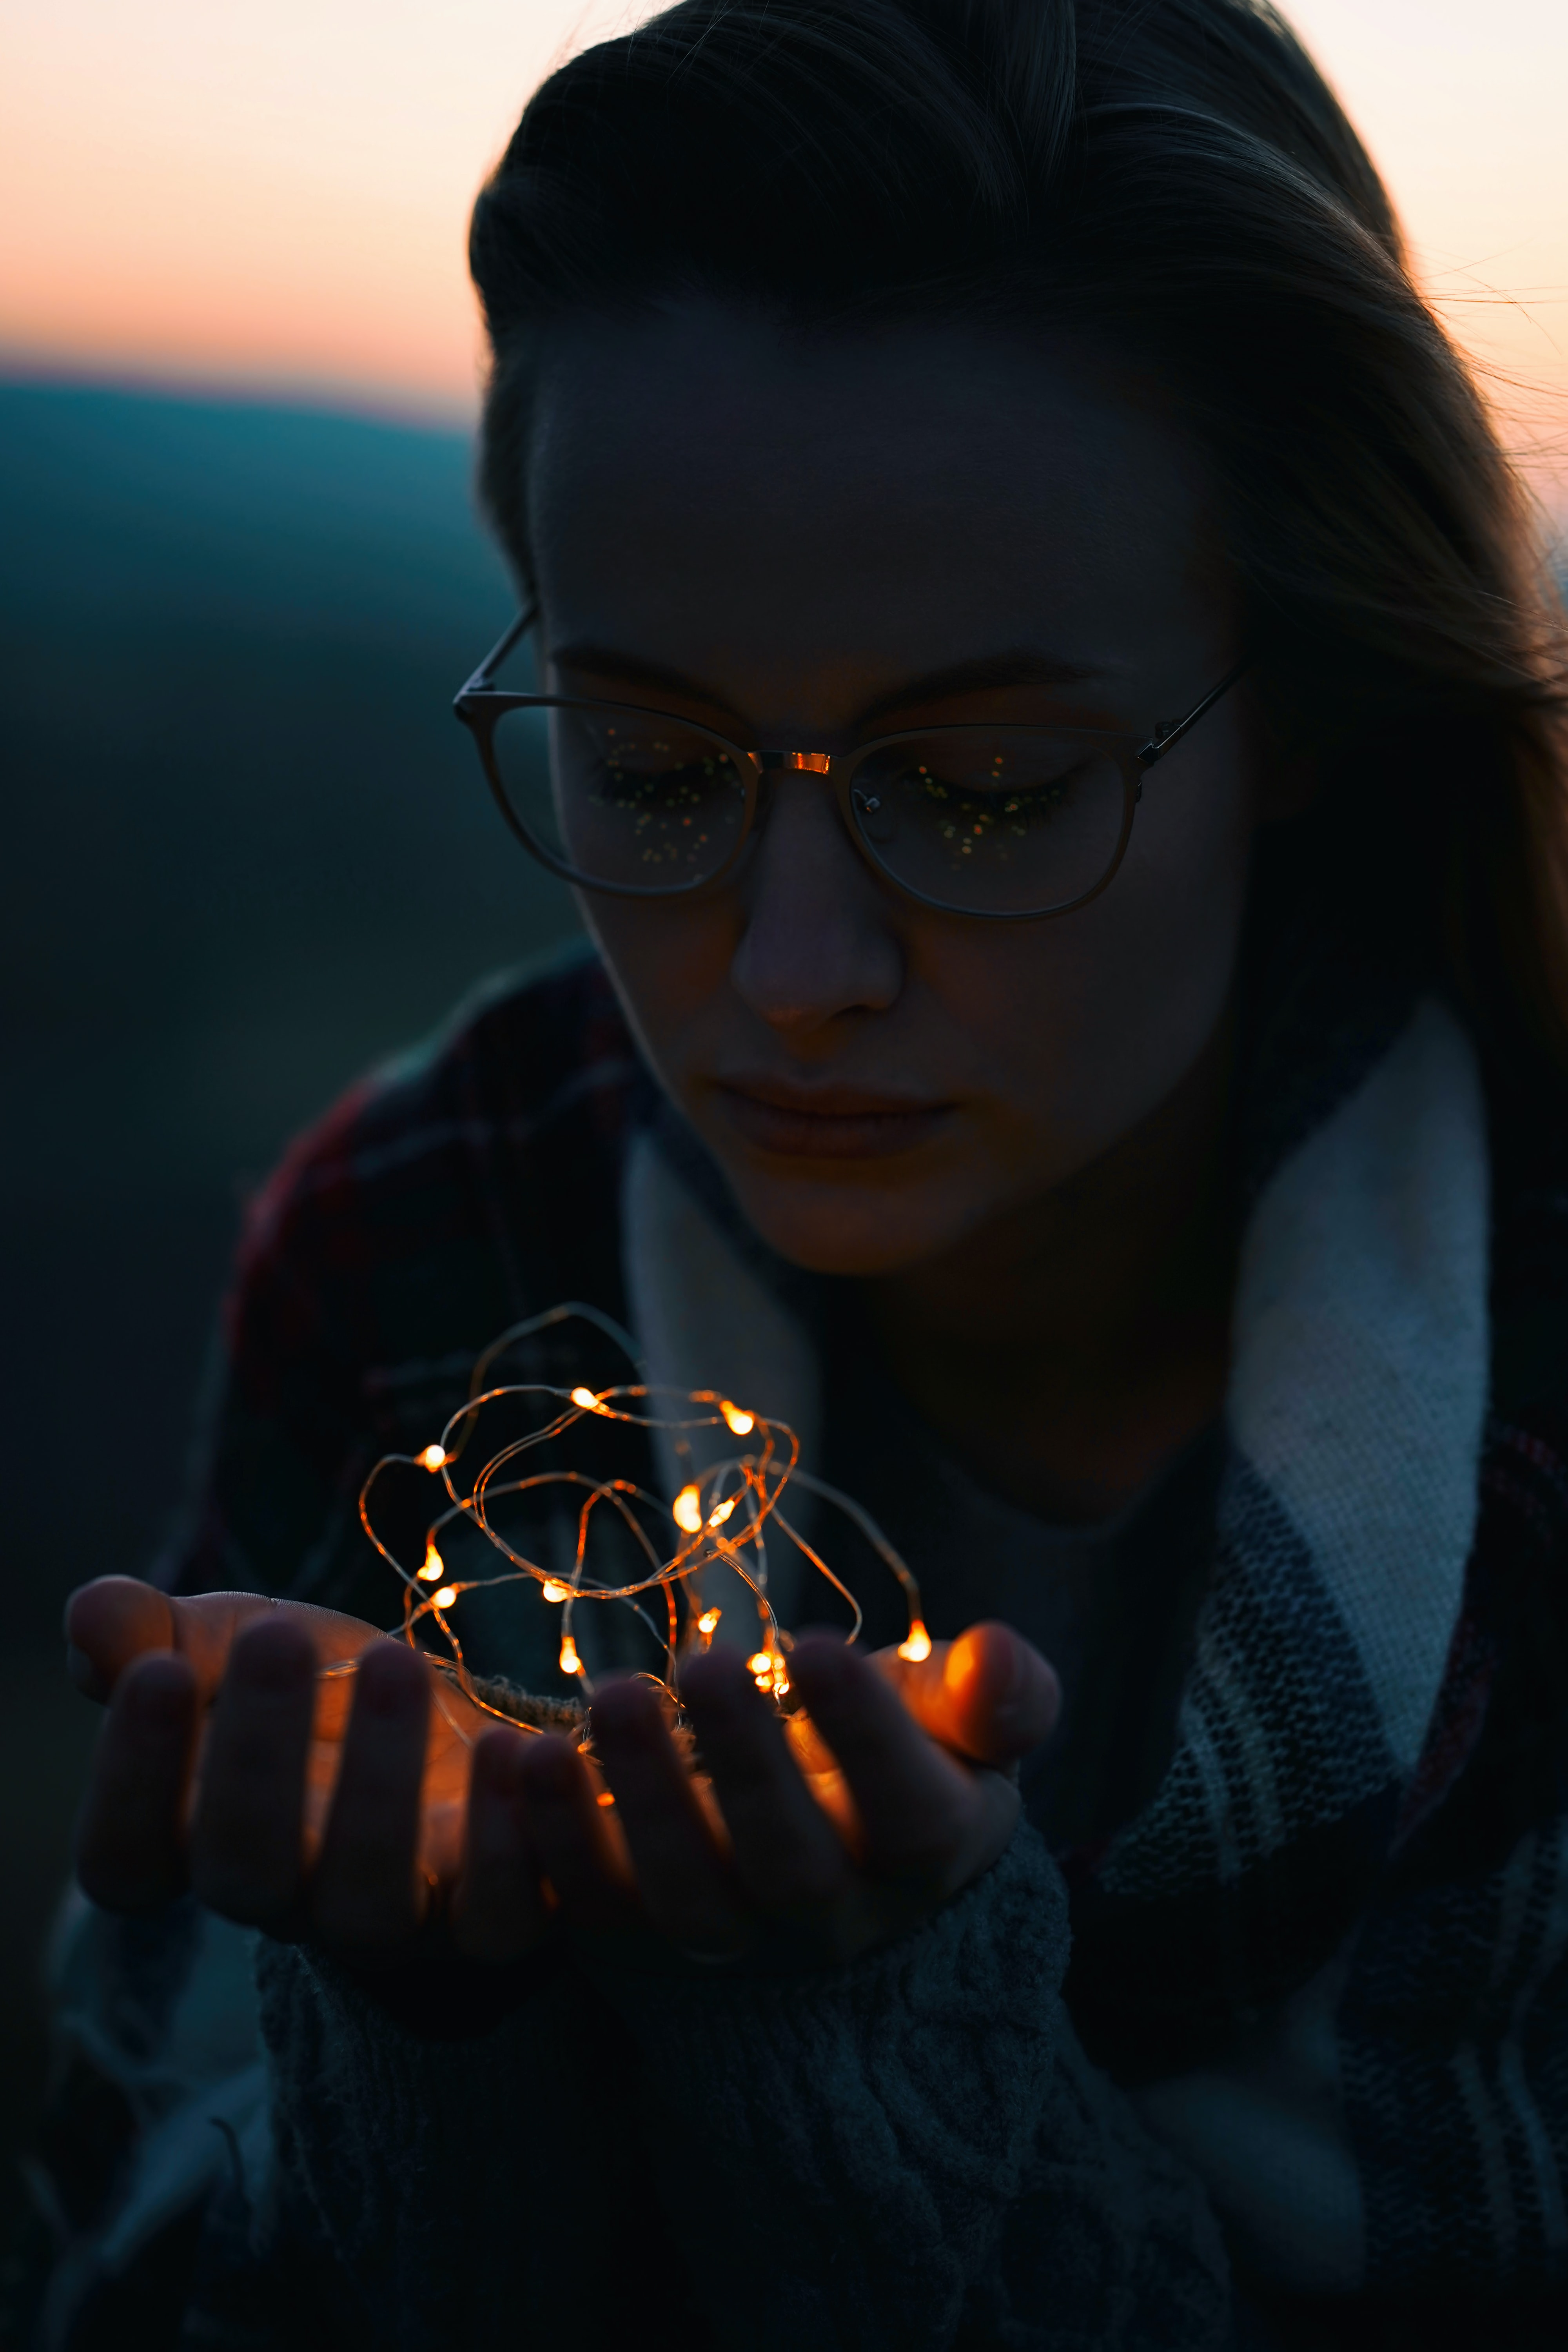 selective focus of woman holding light fixture at night